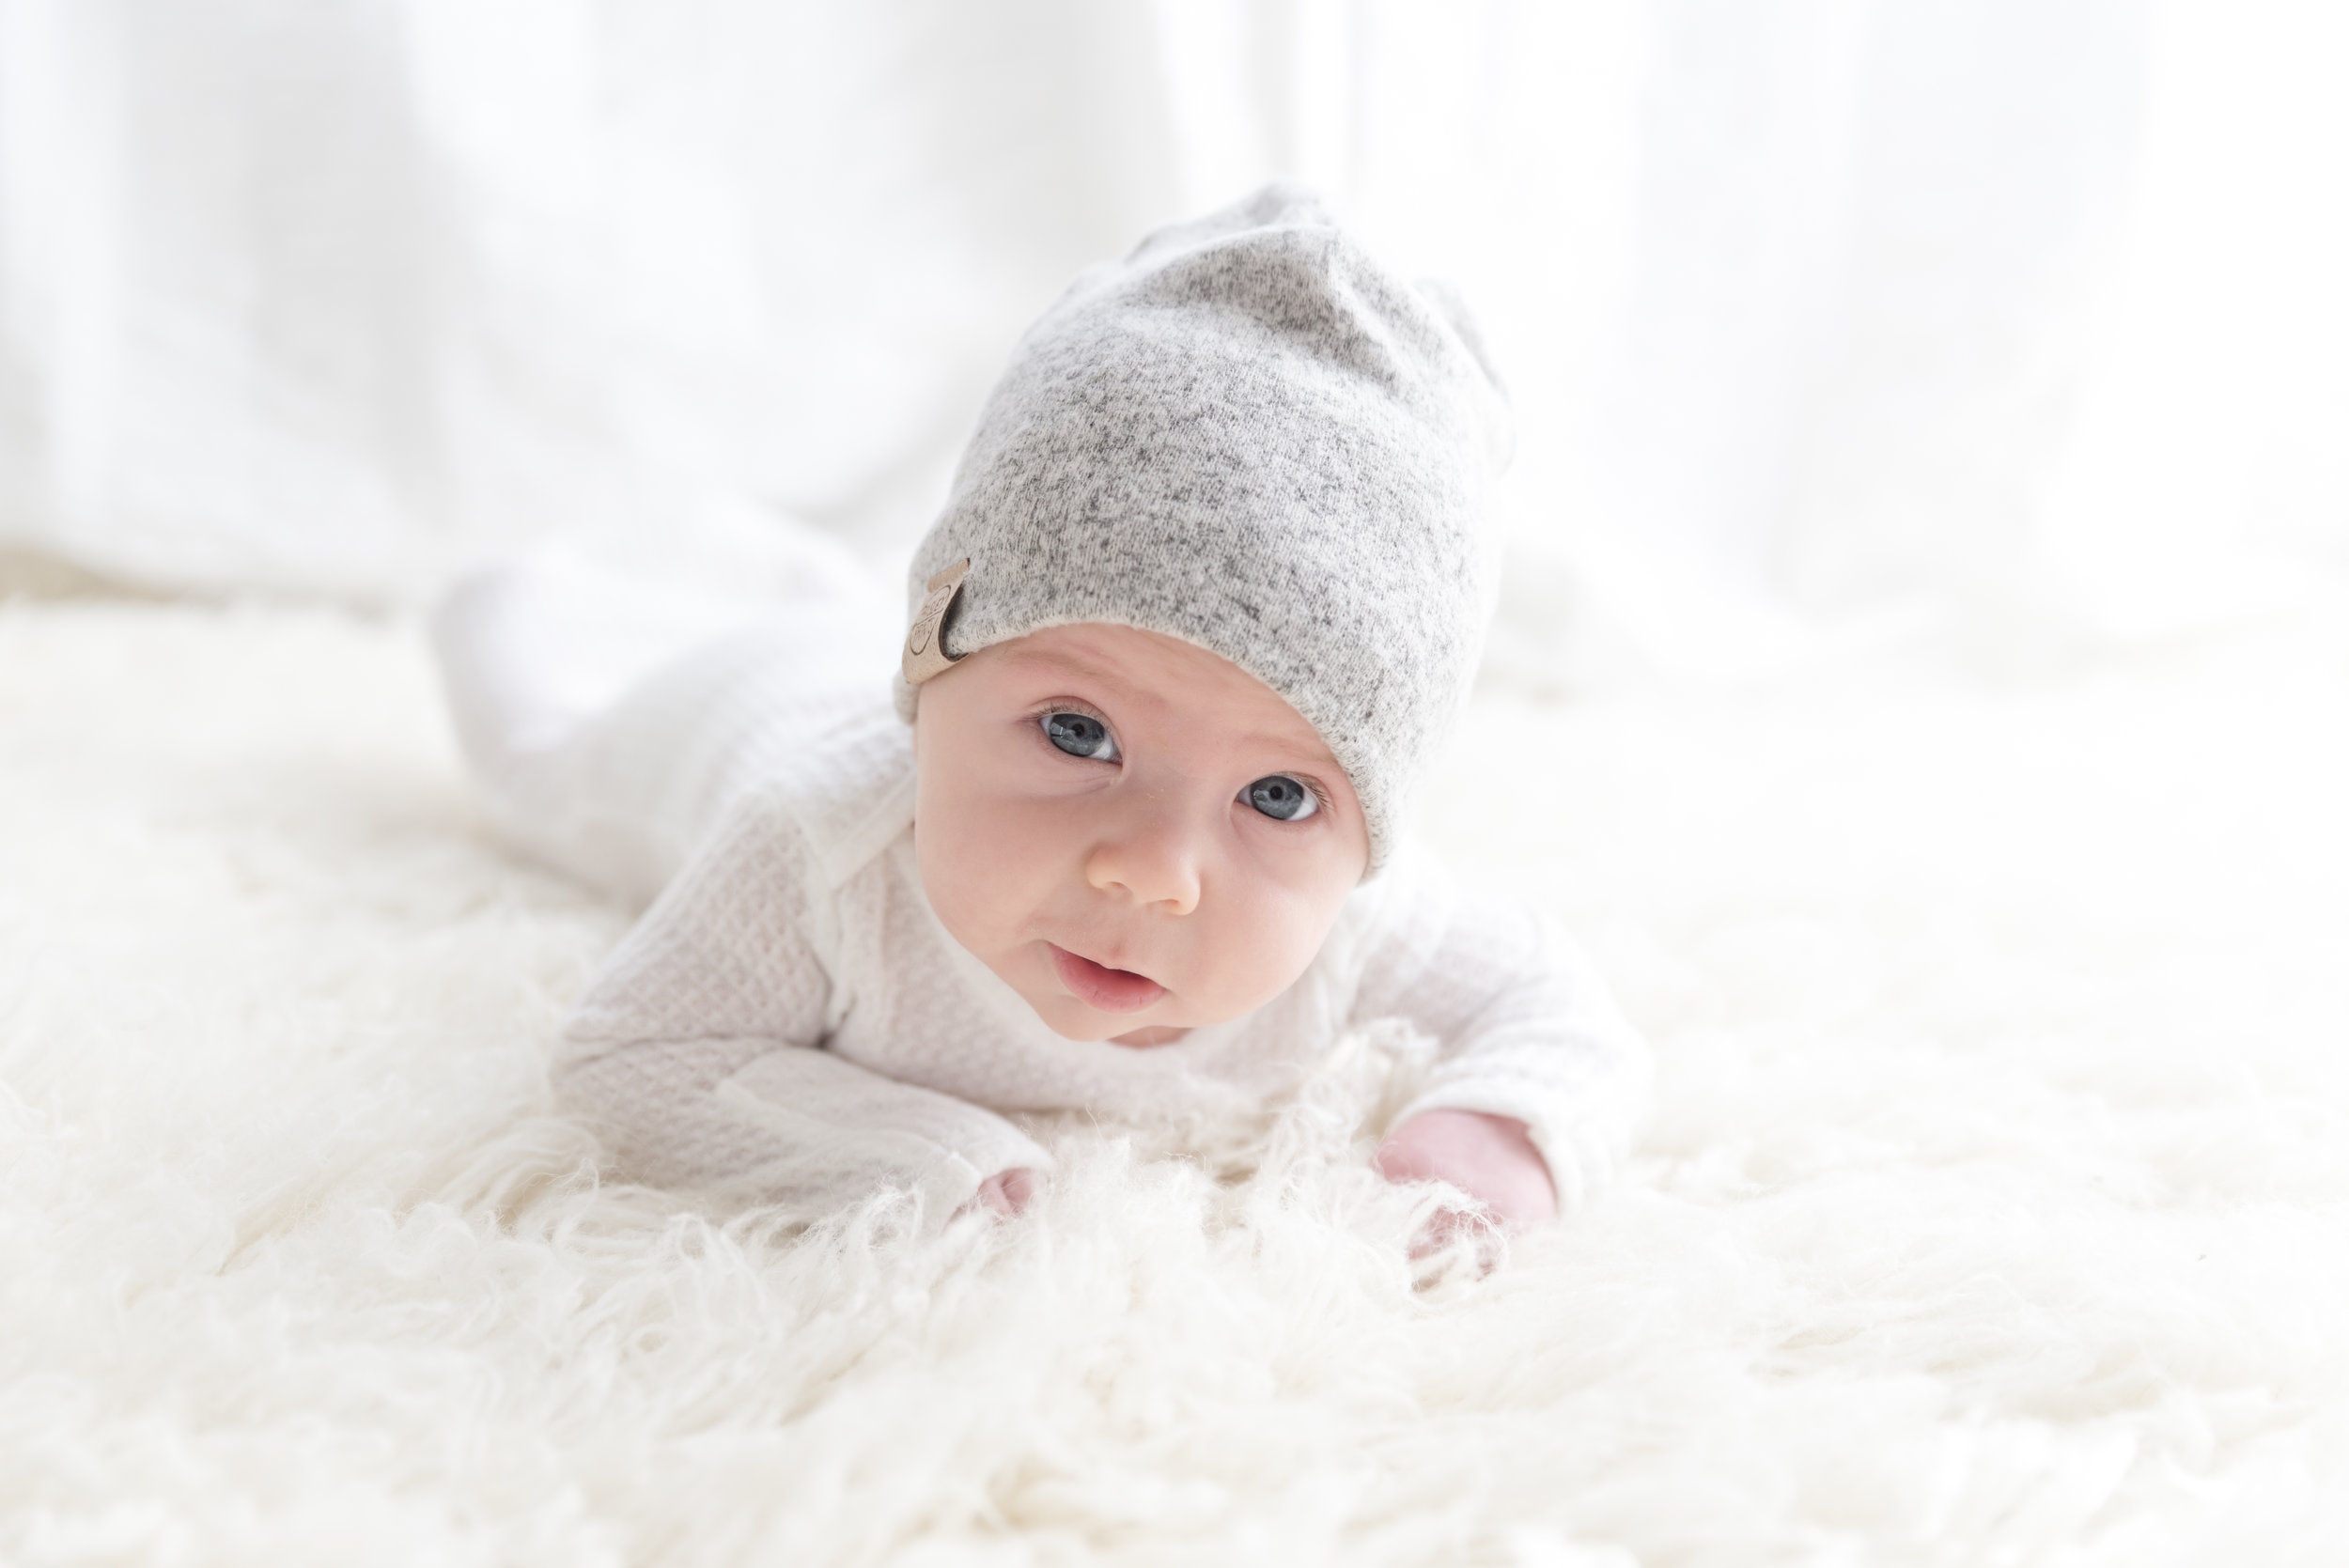 baby-photos-product-photography-infant-images-spokane-washington (2 of 8).jpg